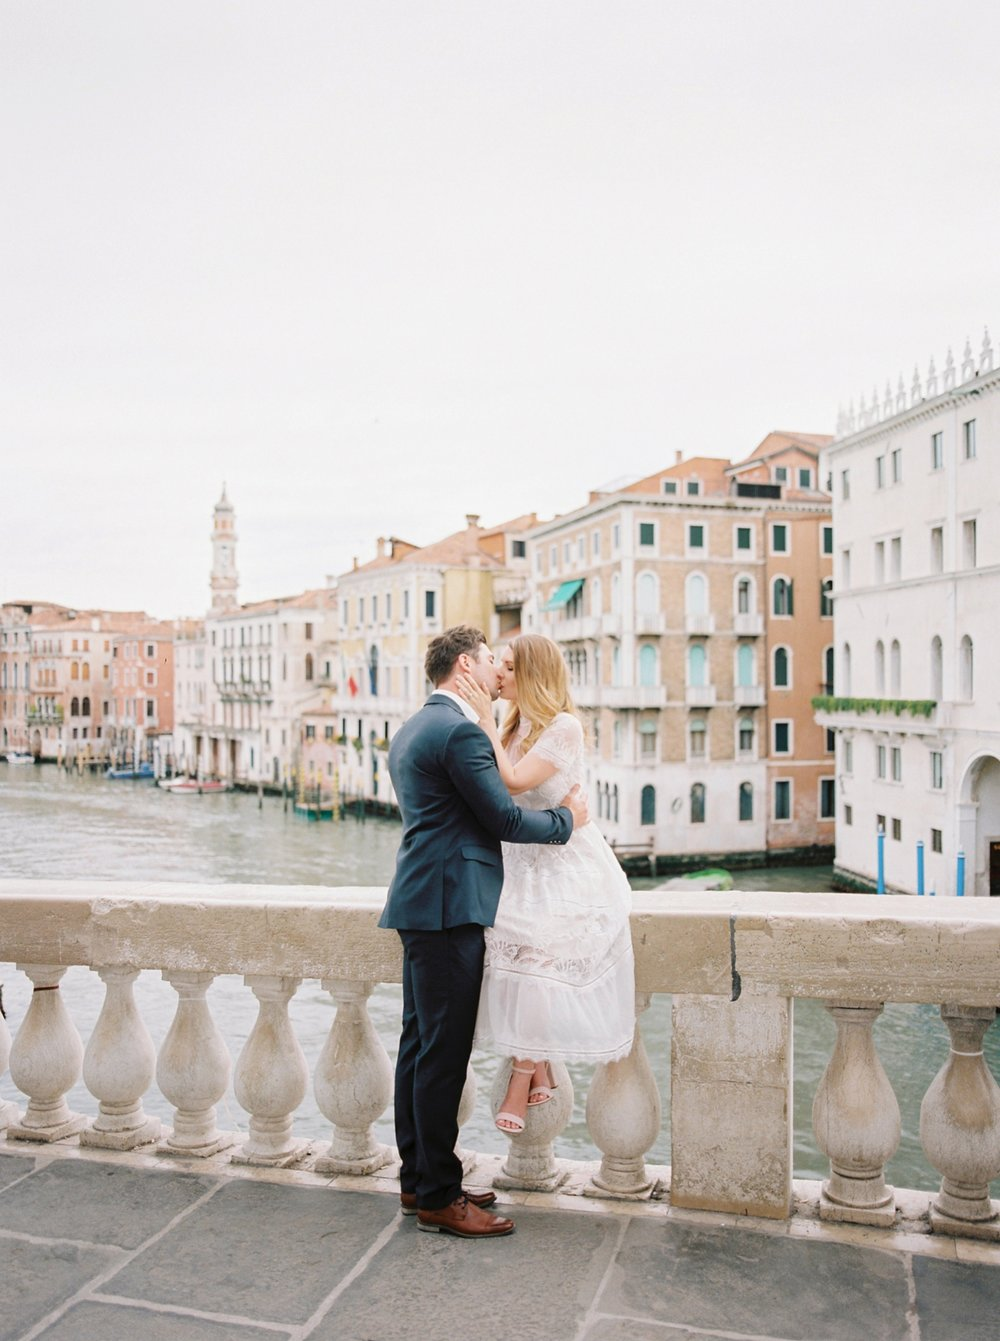 Venice couples anniversary session | pre wedding photos around the venice canals | fine art film photographer Justine Milton